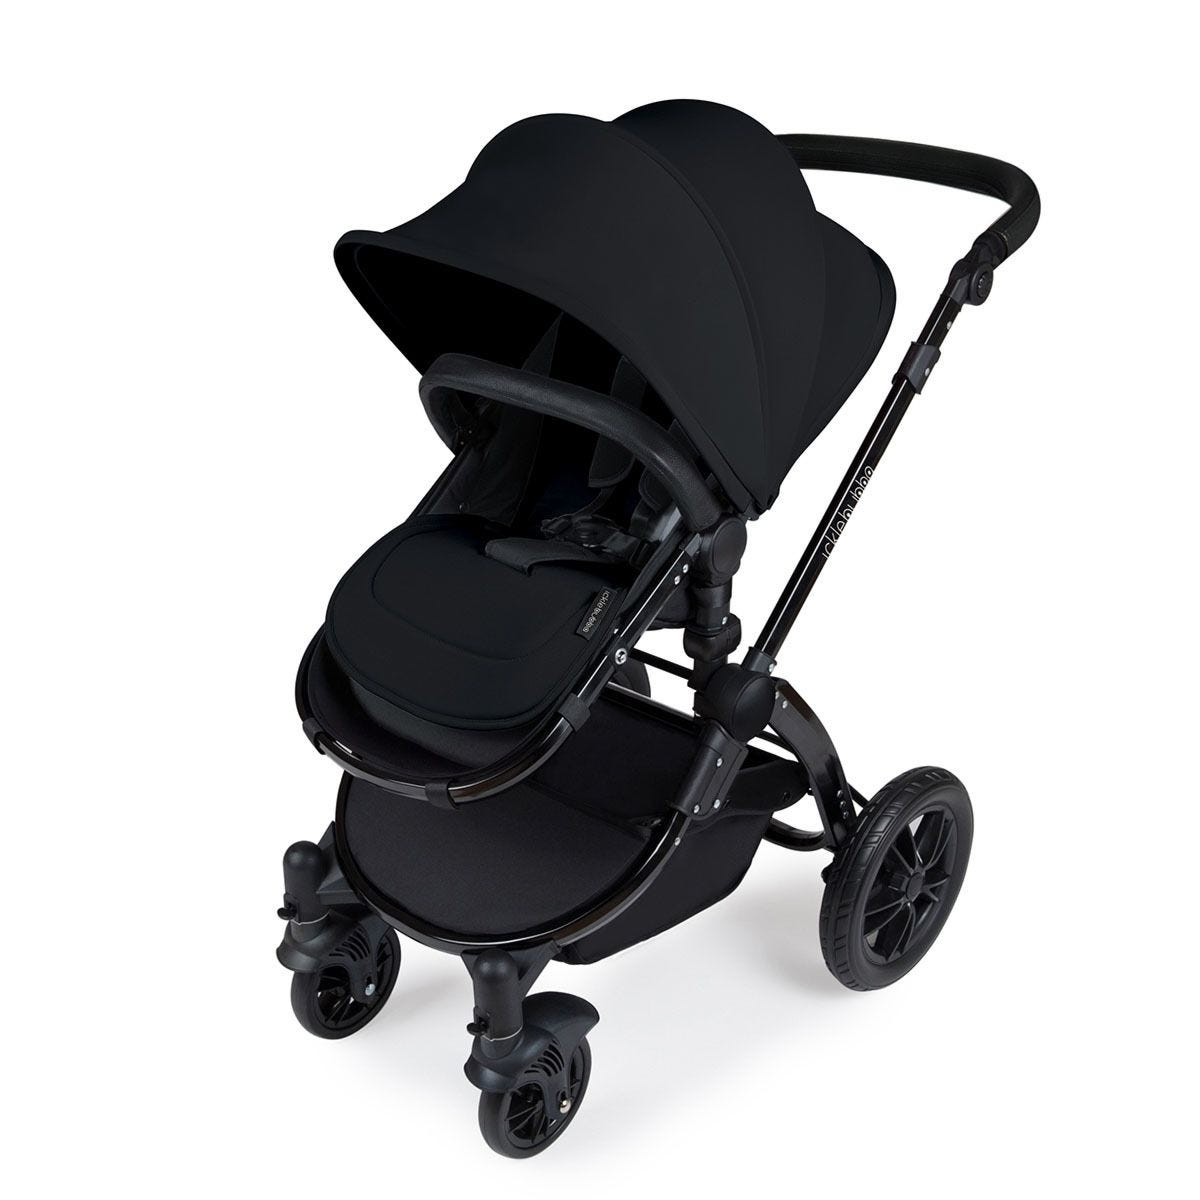 Ickle Bubba Stomp V3 i-Size Travel System with Isofix Base - Black on Black with Black Handles